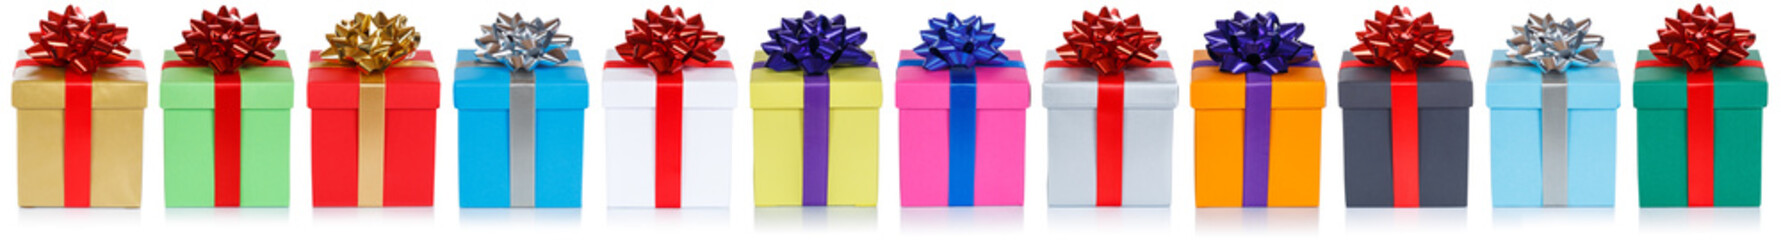 Group of christmas presents birthday gifts in a row isolated on white